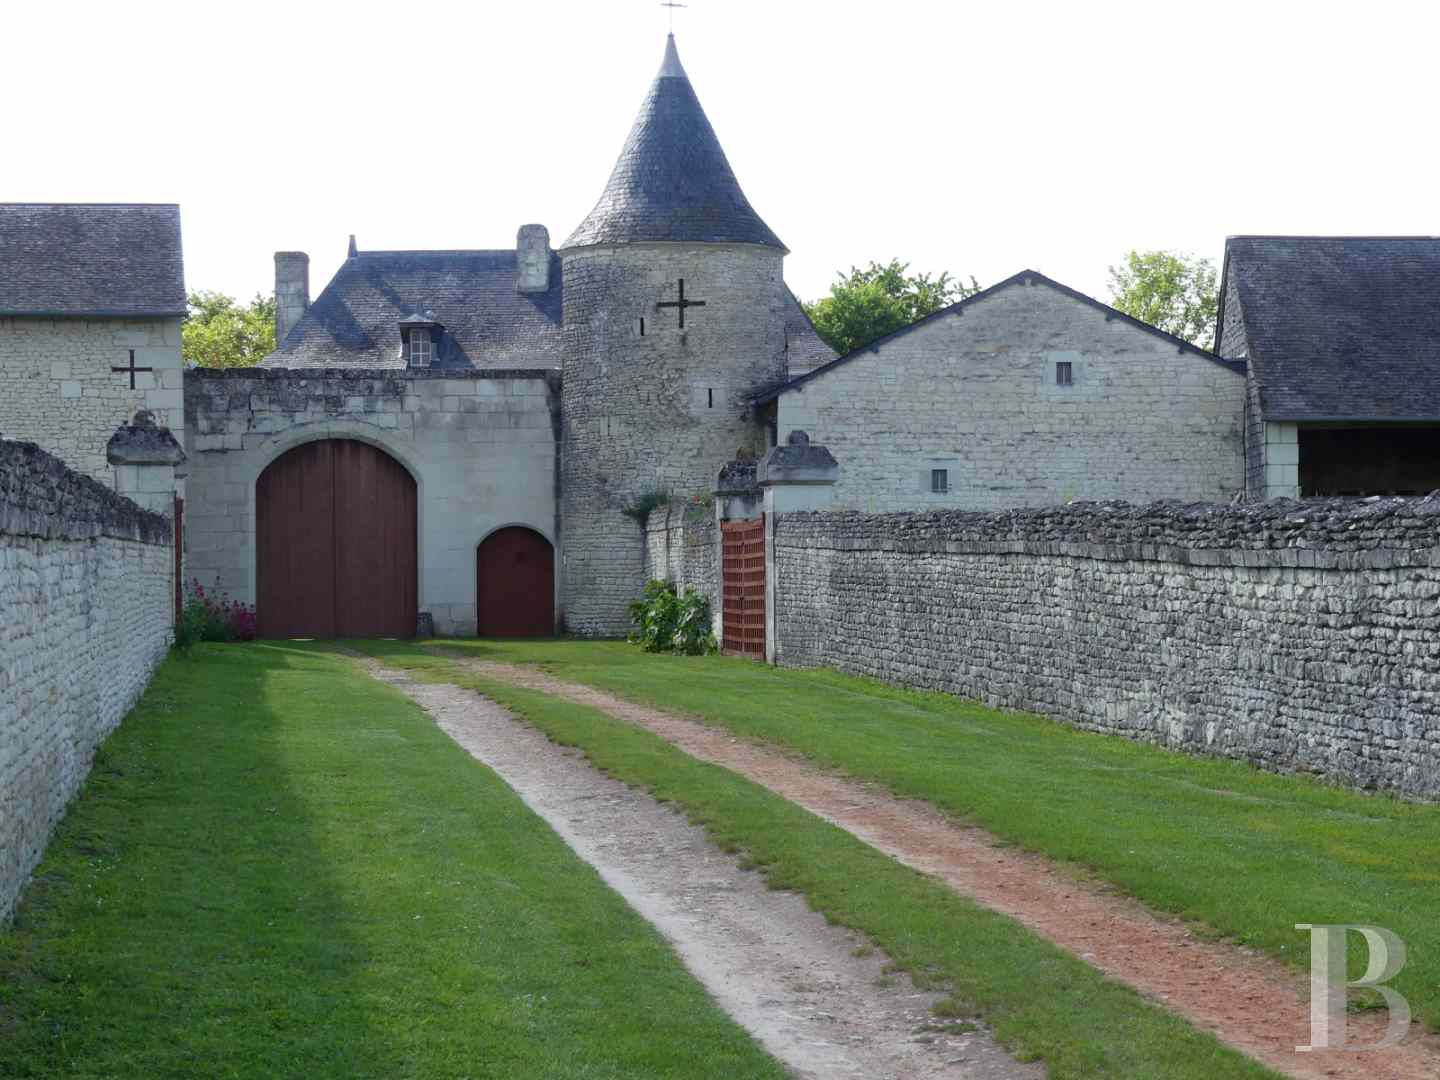 property for sale France poitou charentes residences historic - 1 zoom